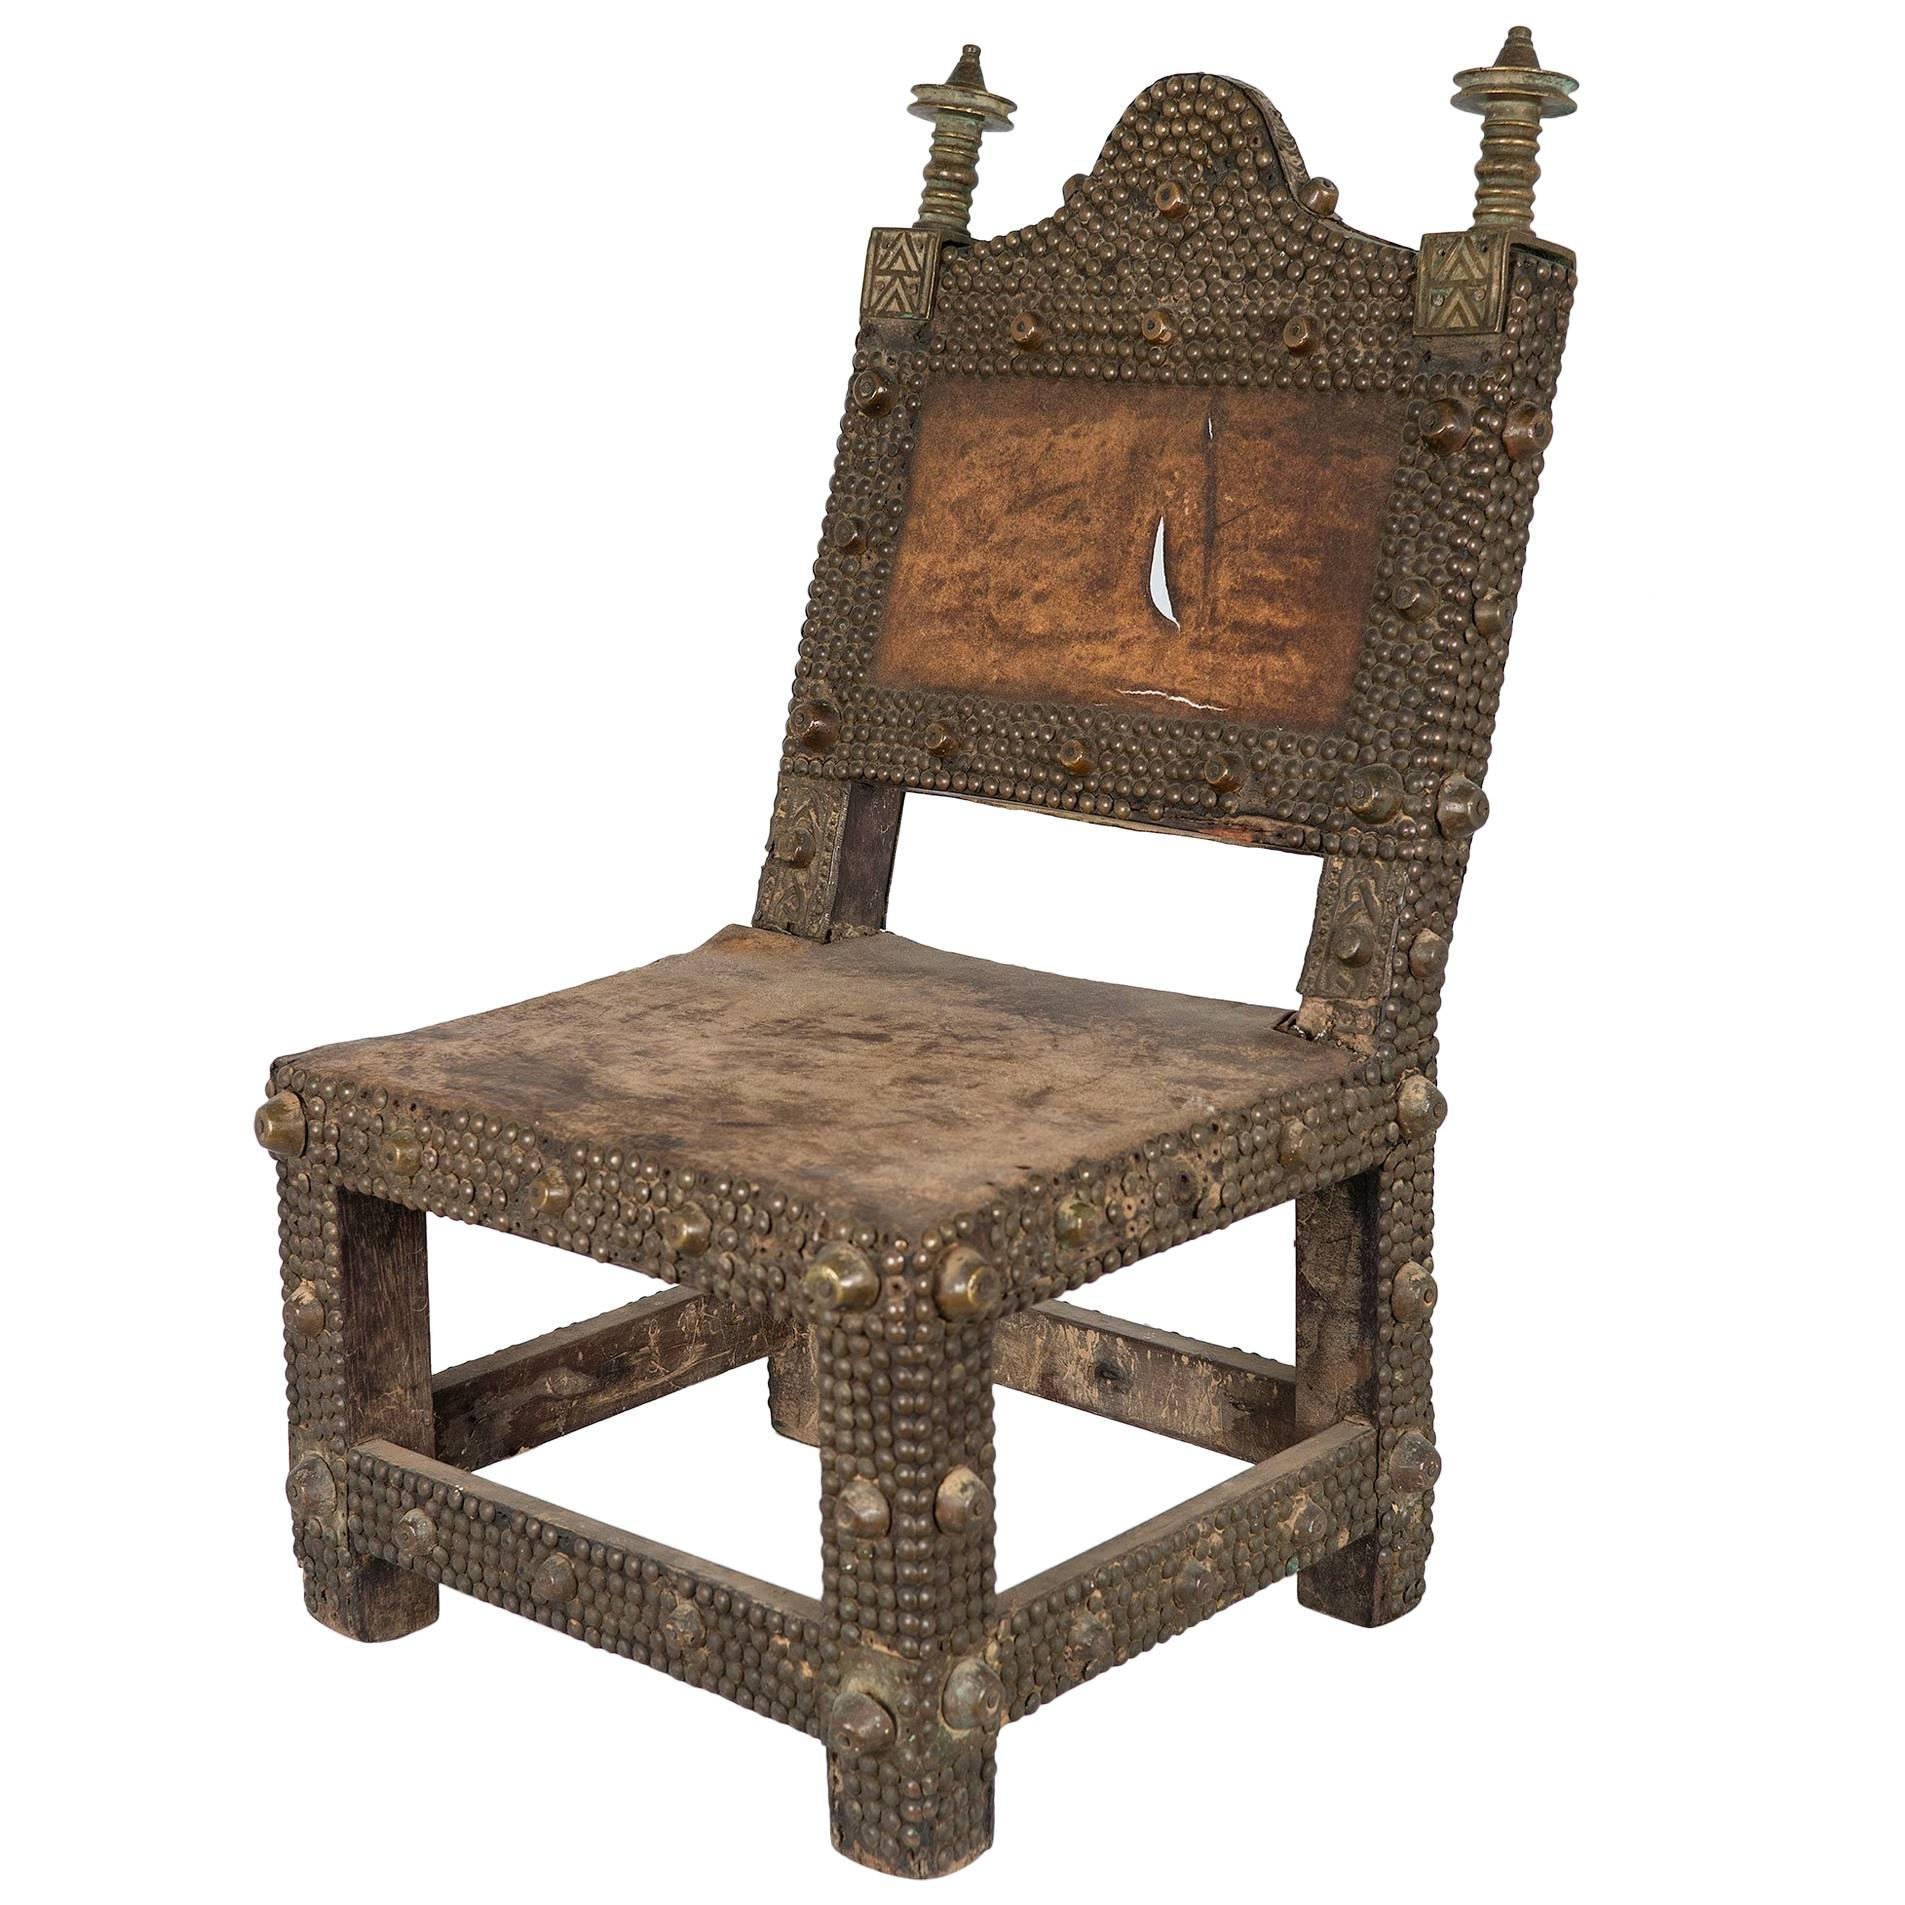 Lovely Vintage African Ashanti Kings Chair/ Throne For Sale